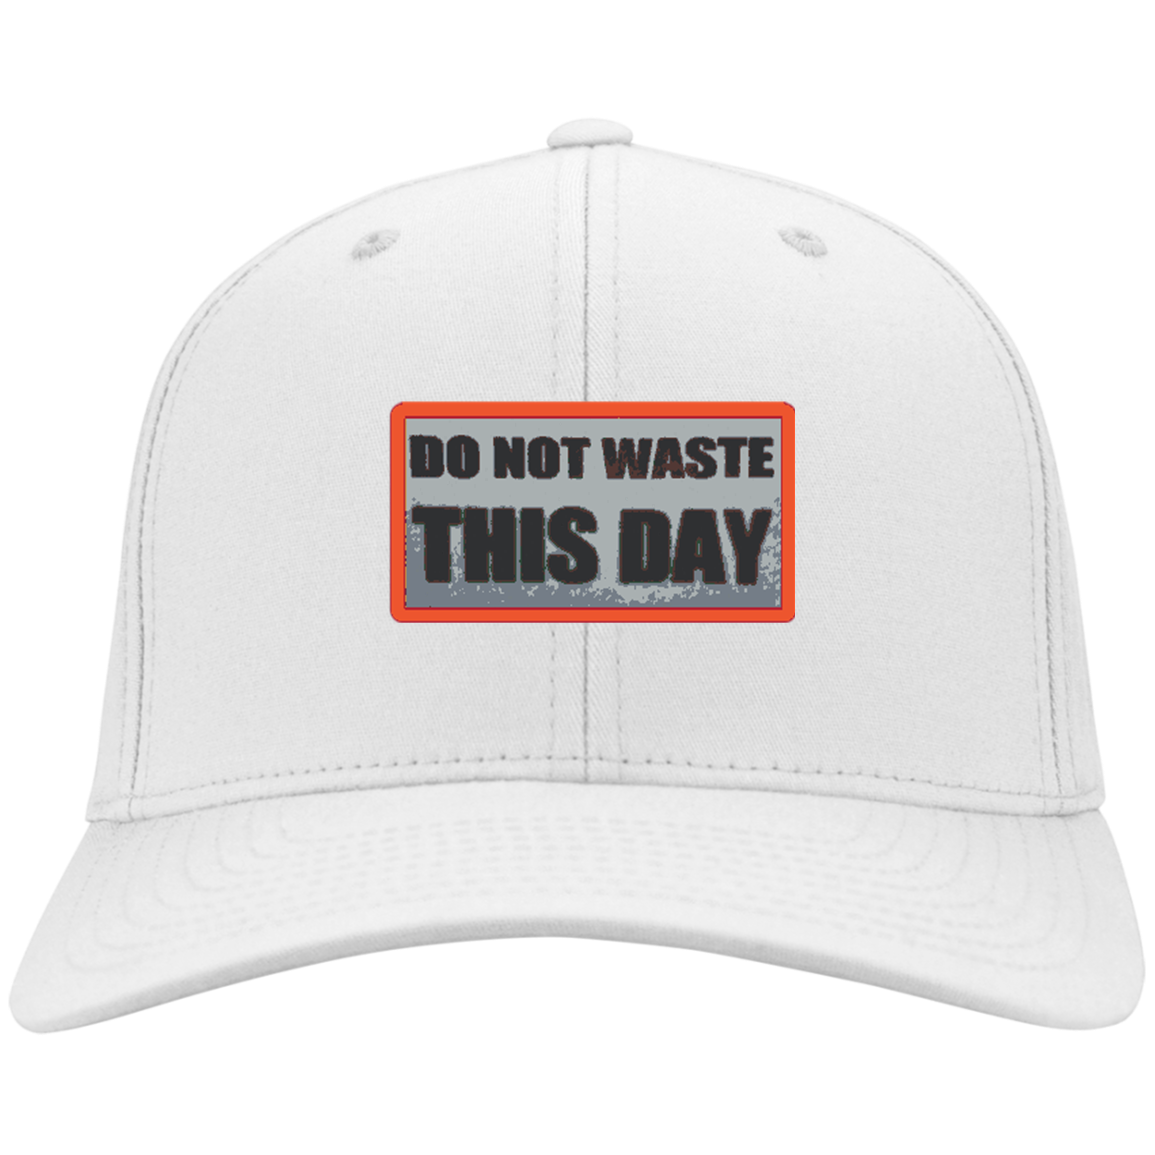 Cap  Hat DO NOT WASTE THIS DAY logo on Retro Background